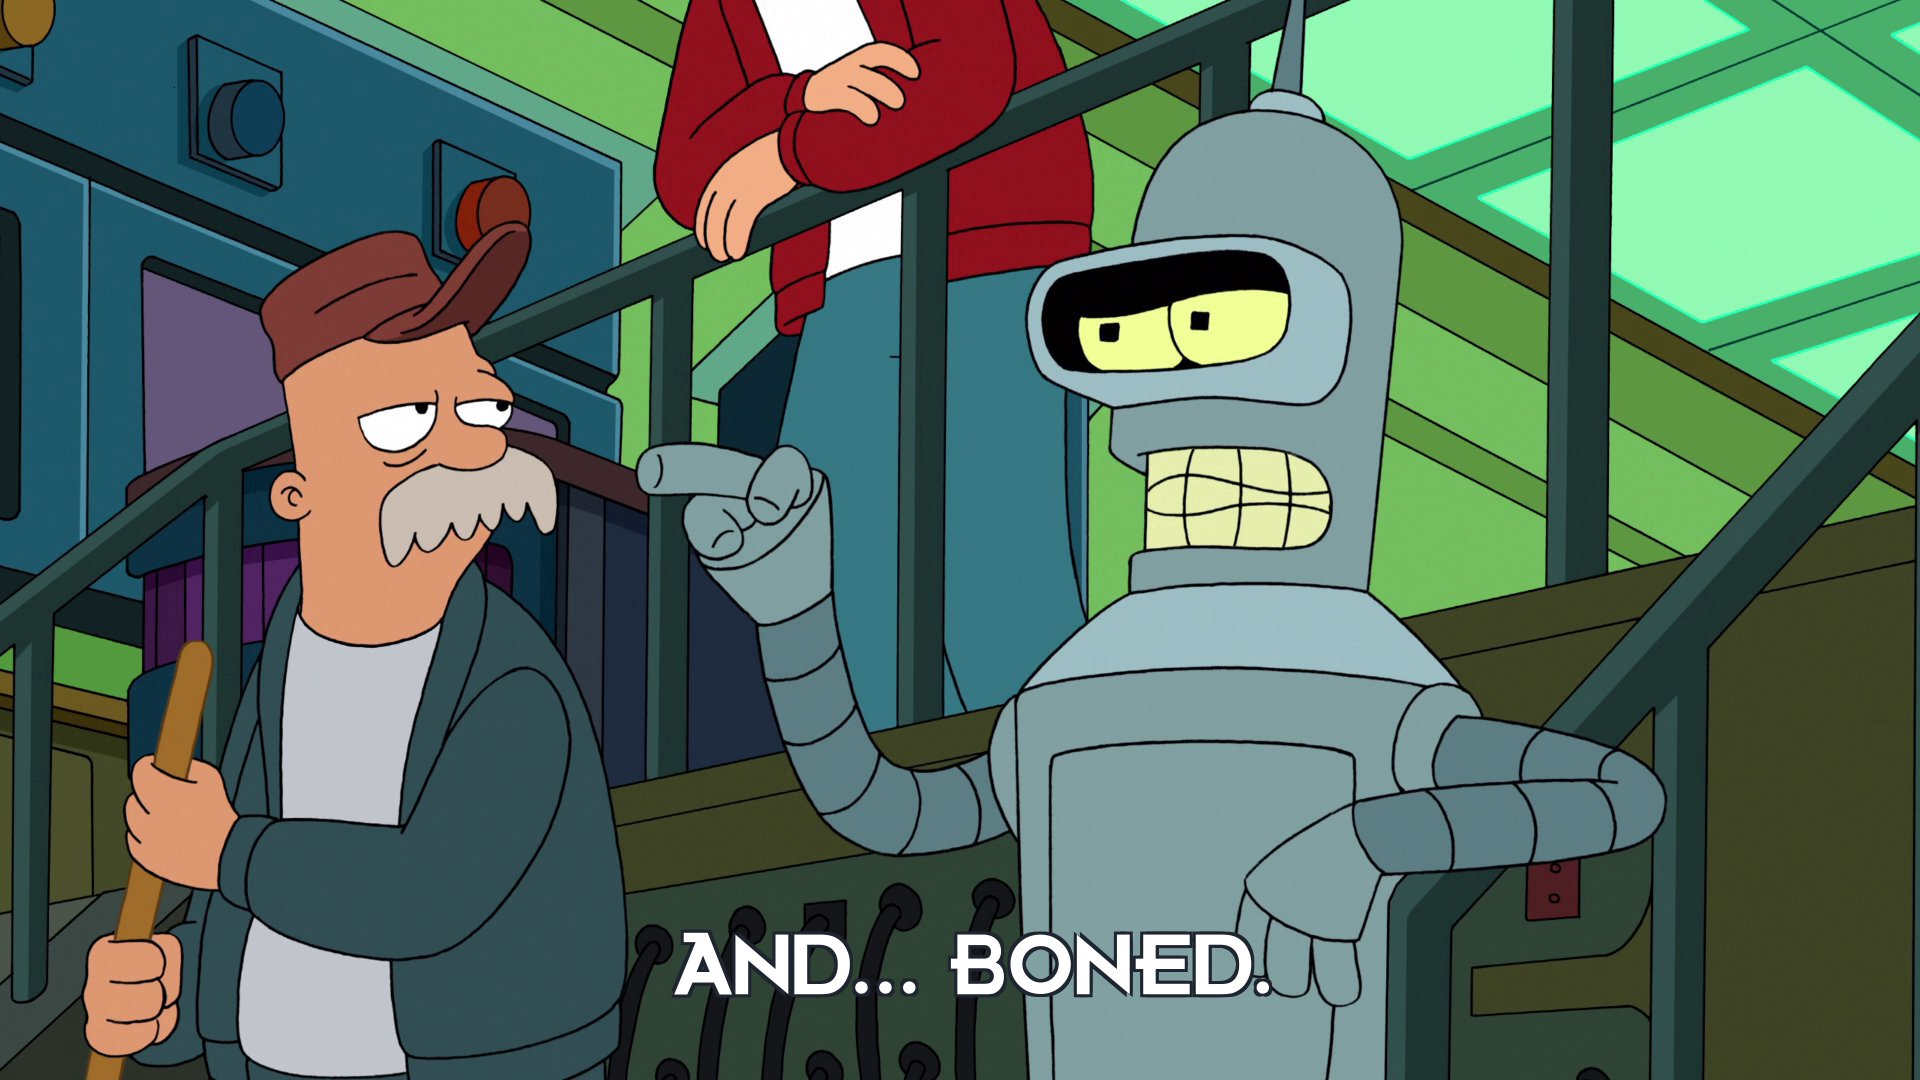 Bender Bending Rodriguez: And... boned.